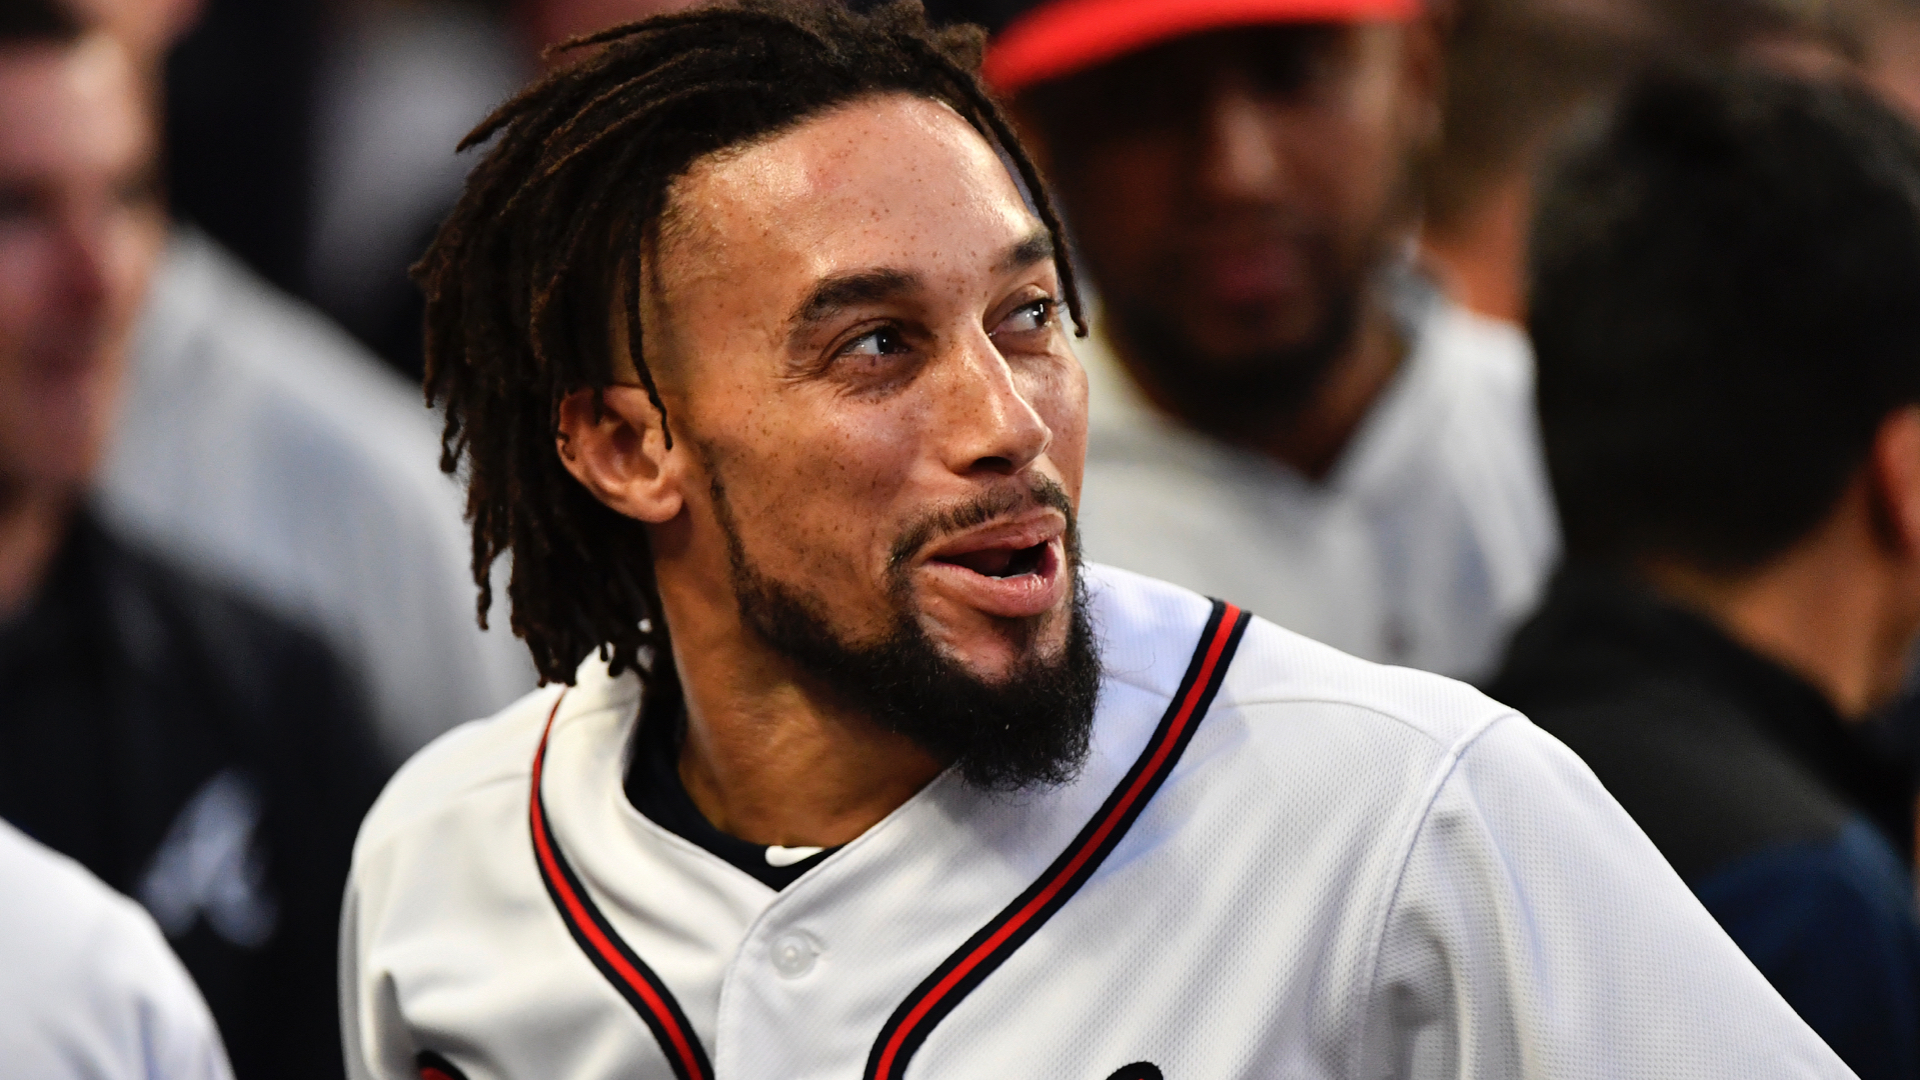 Billy Hamilton's love for 'Criminal Minds' complicated his Mets arrival 1